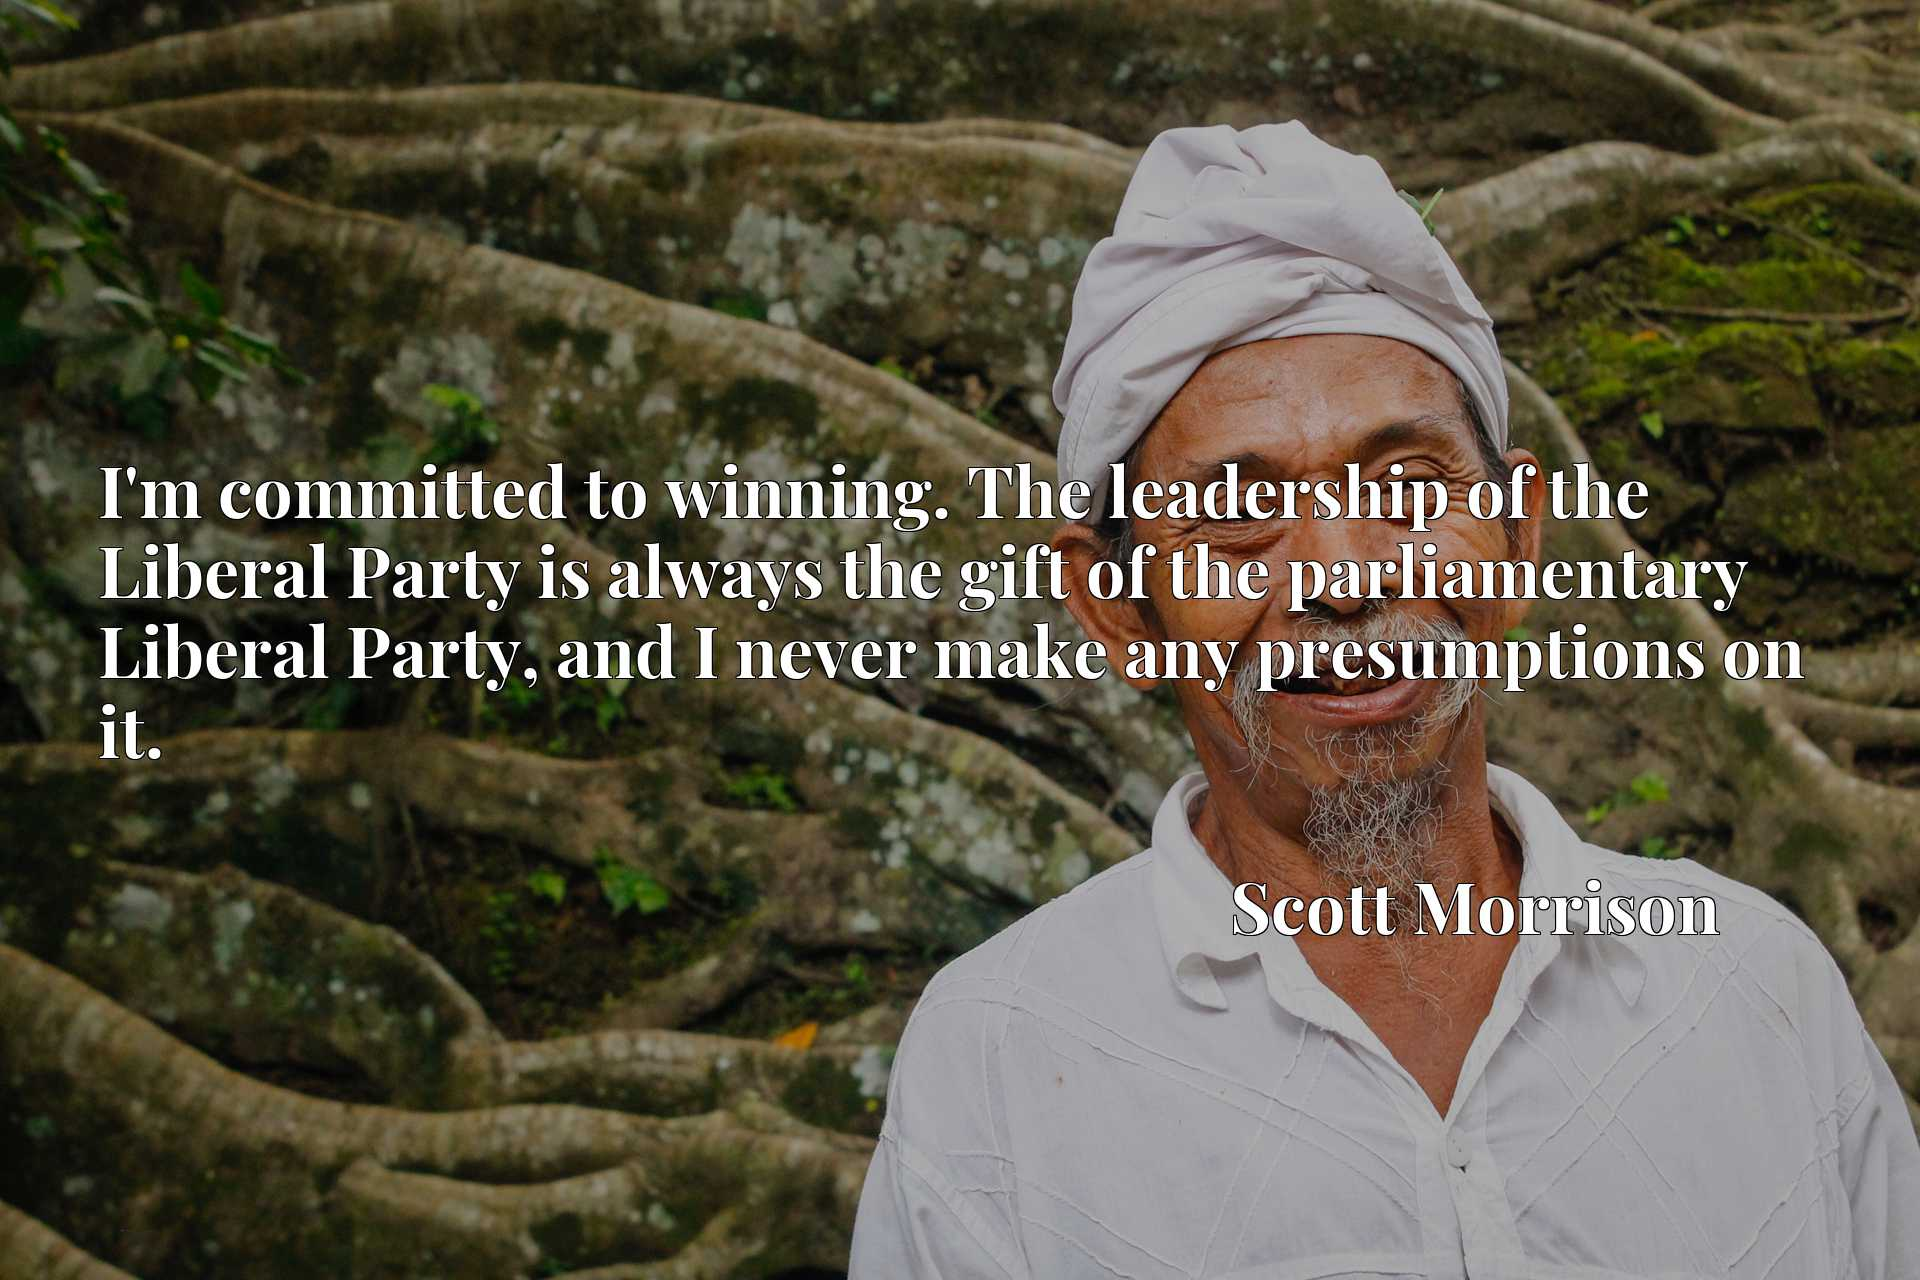 I'm committed to winning. The leadership of the Liberal Party is always the gift of the parliamentary Liberal Party, and I never make any presumptions on it.